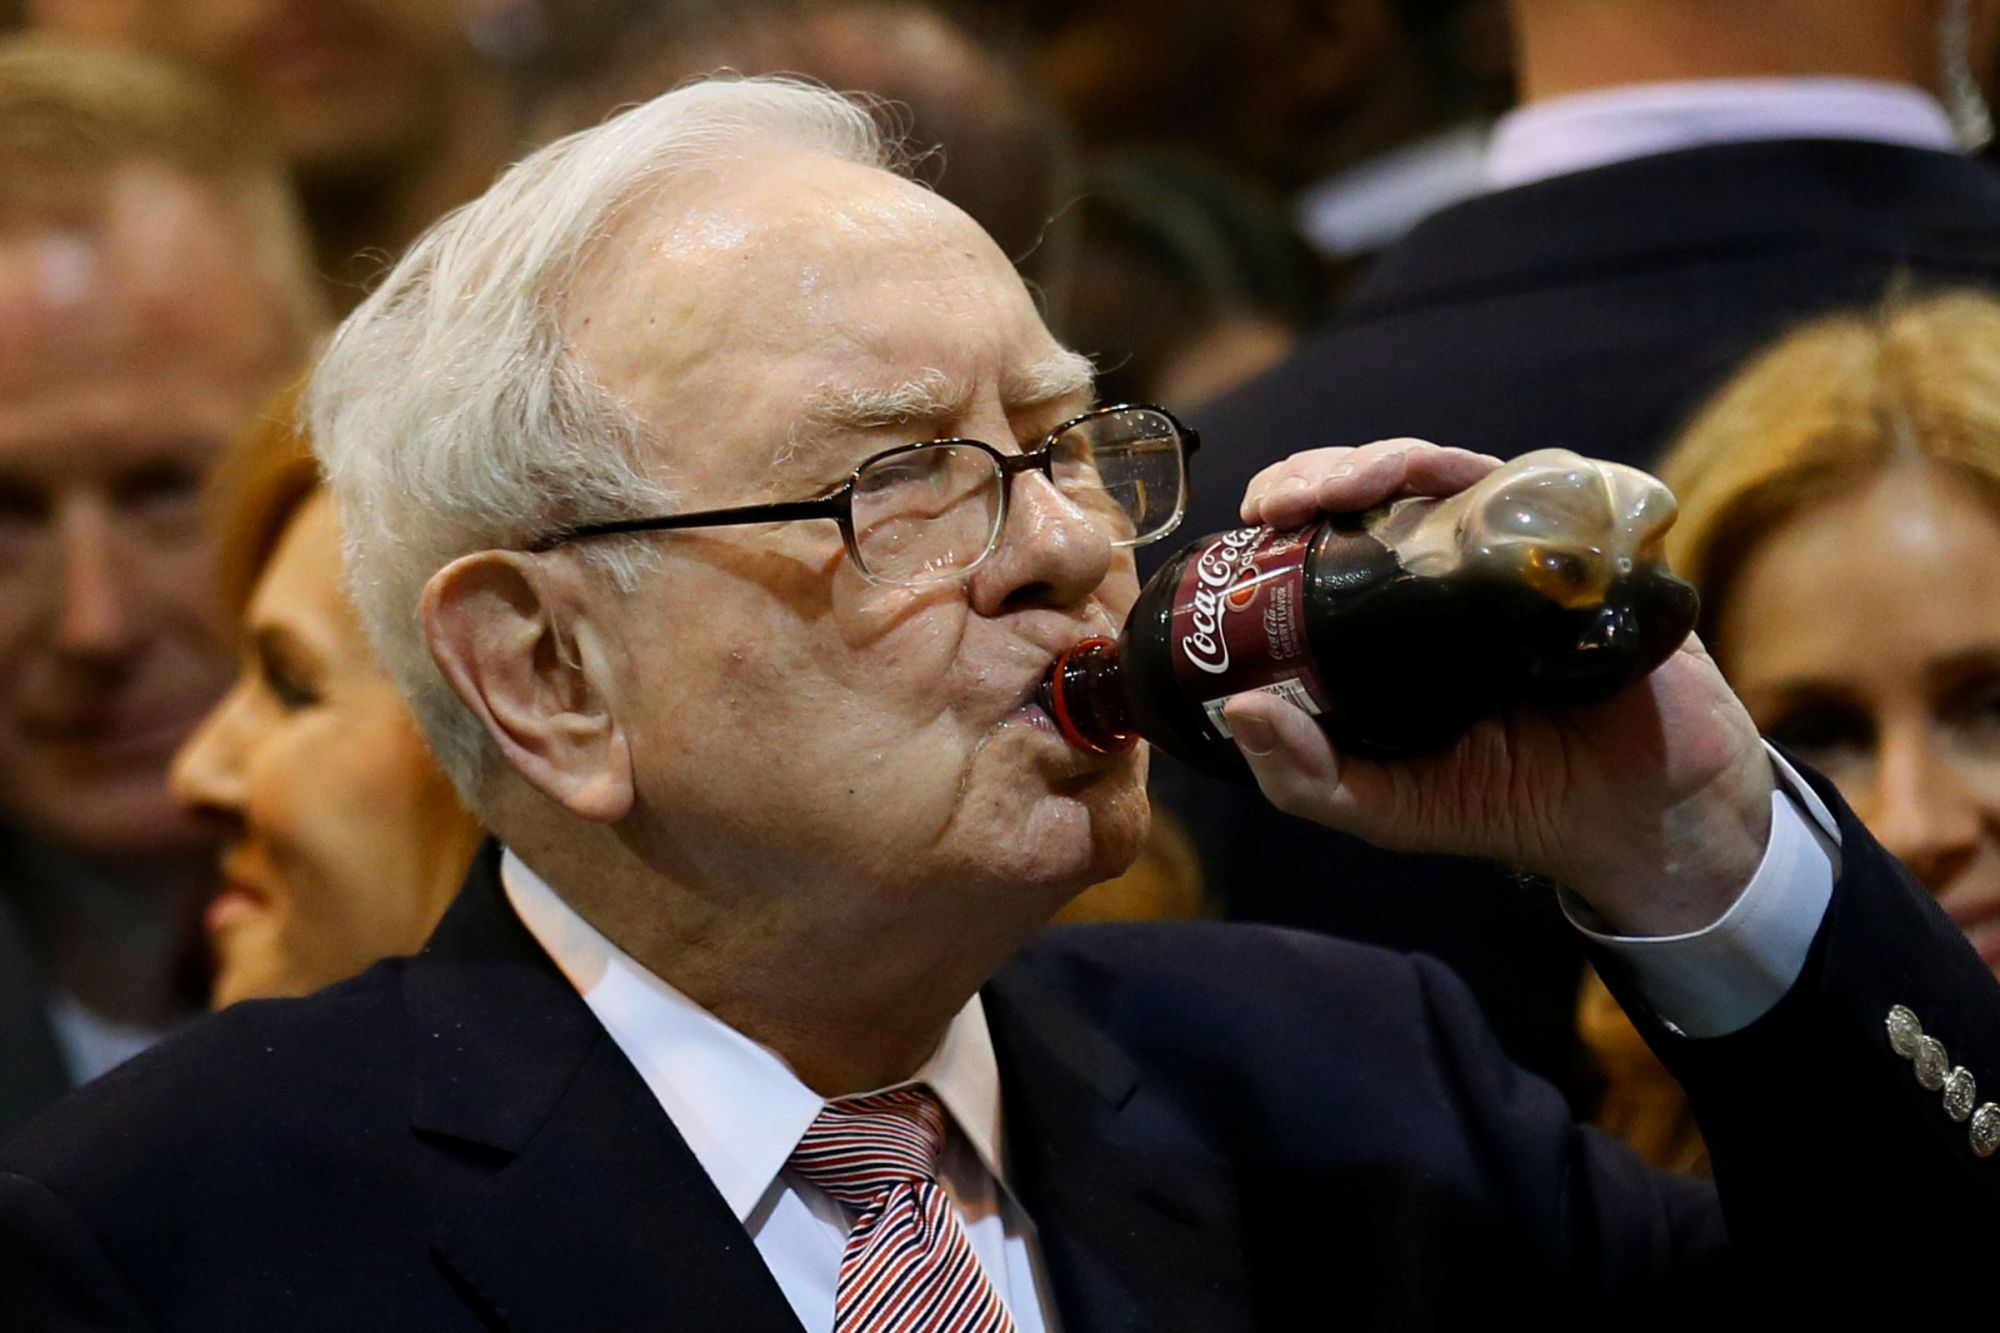 Warren Buffett Says He Eats McDonald's 3 Times a Week and Pounds Cokes Because He's Not 'Bothered' by Death